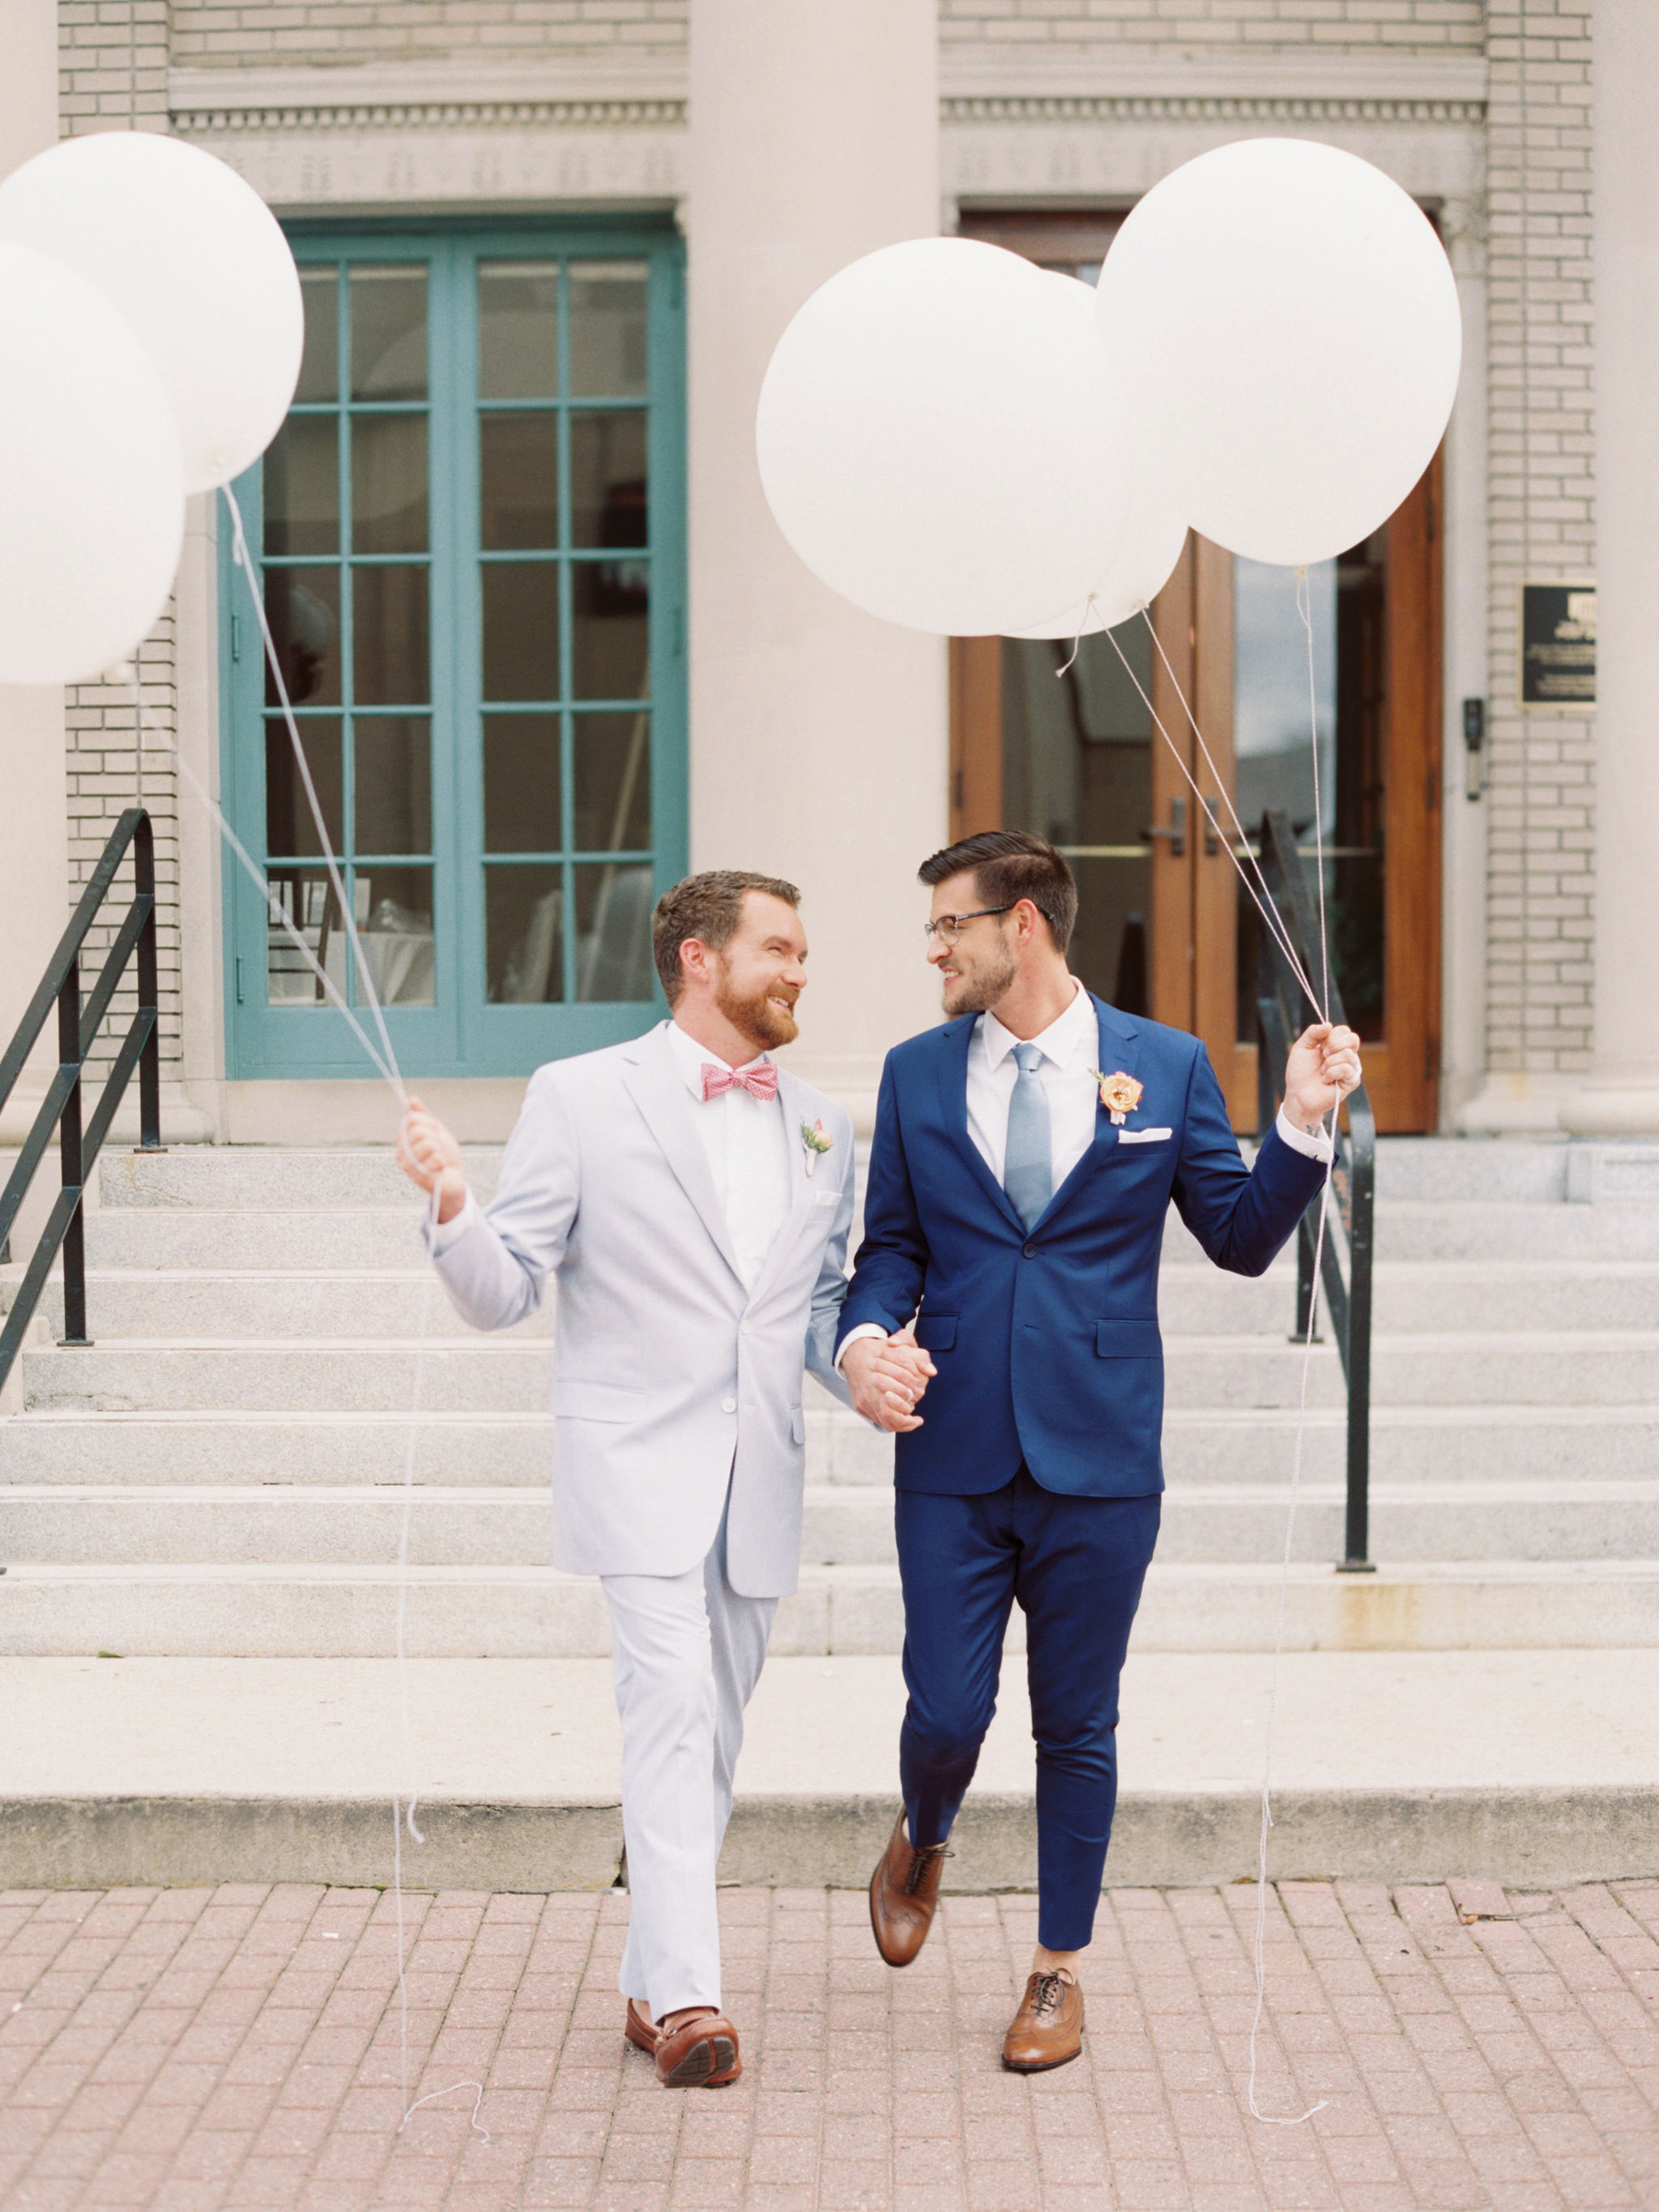 Gay Couple Wedding Ideas